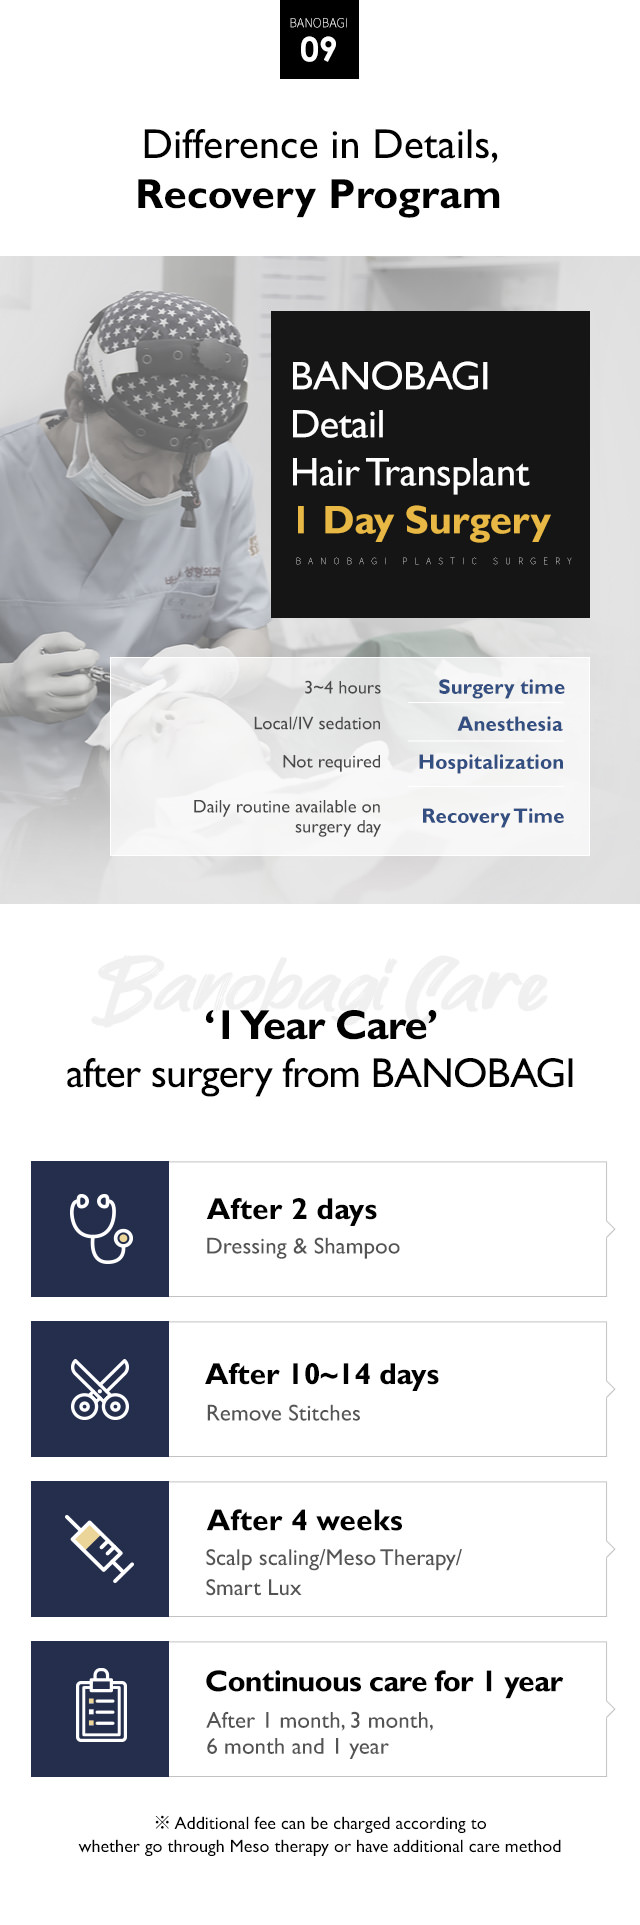 BANOBAGI 10 Difference in Details, Recovery Program